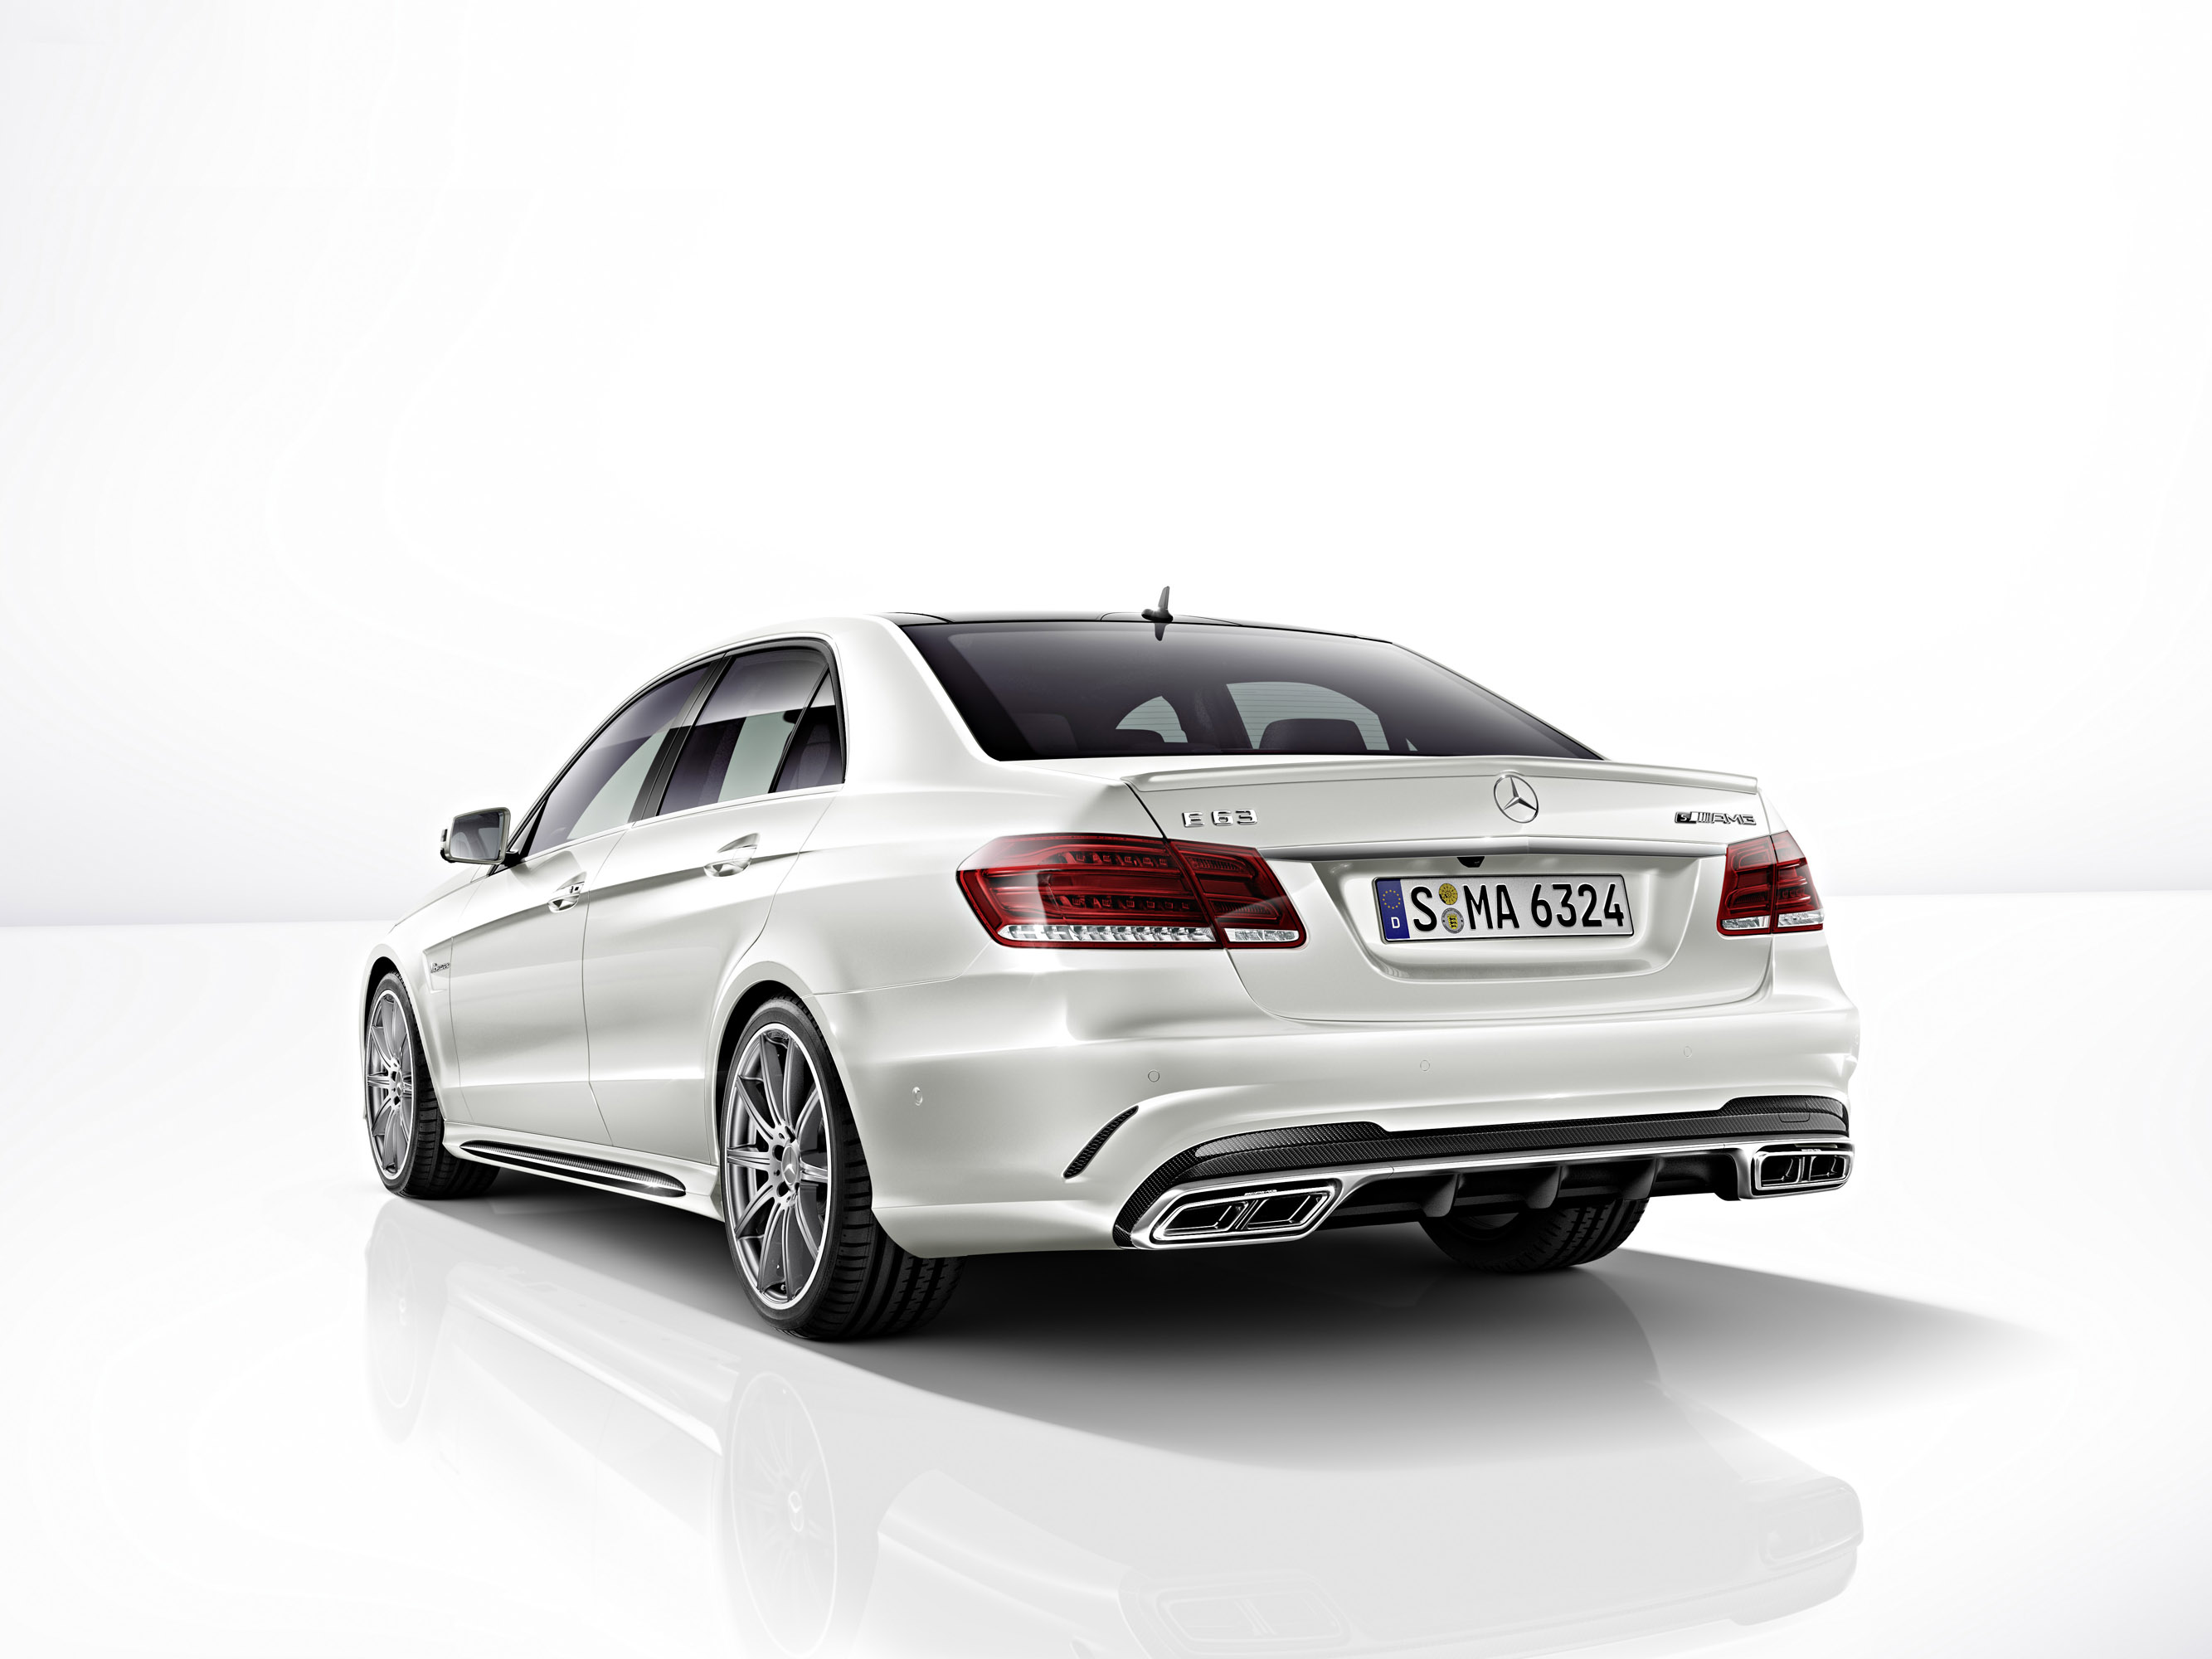 2013 Mercedes Benz E 63 Amg S 585hp And 800 Nm